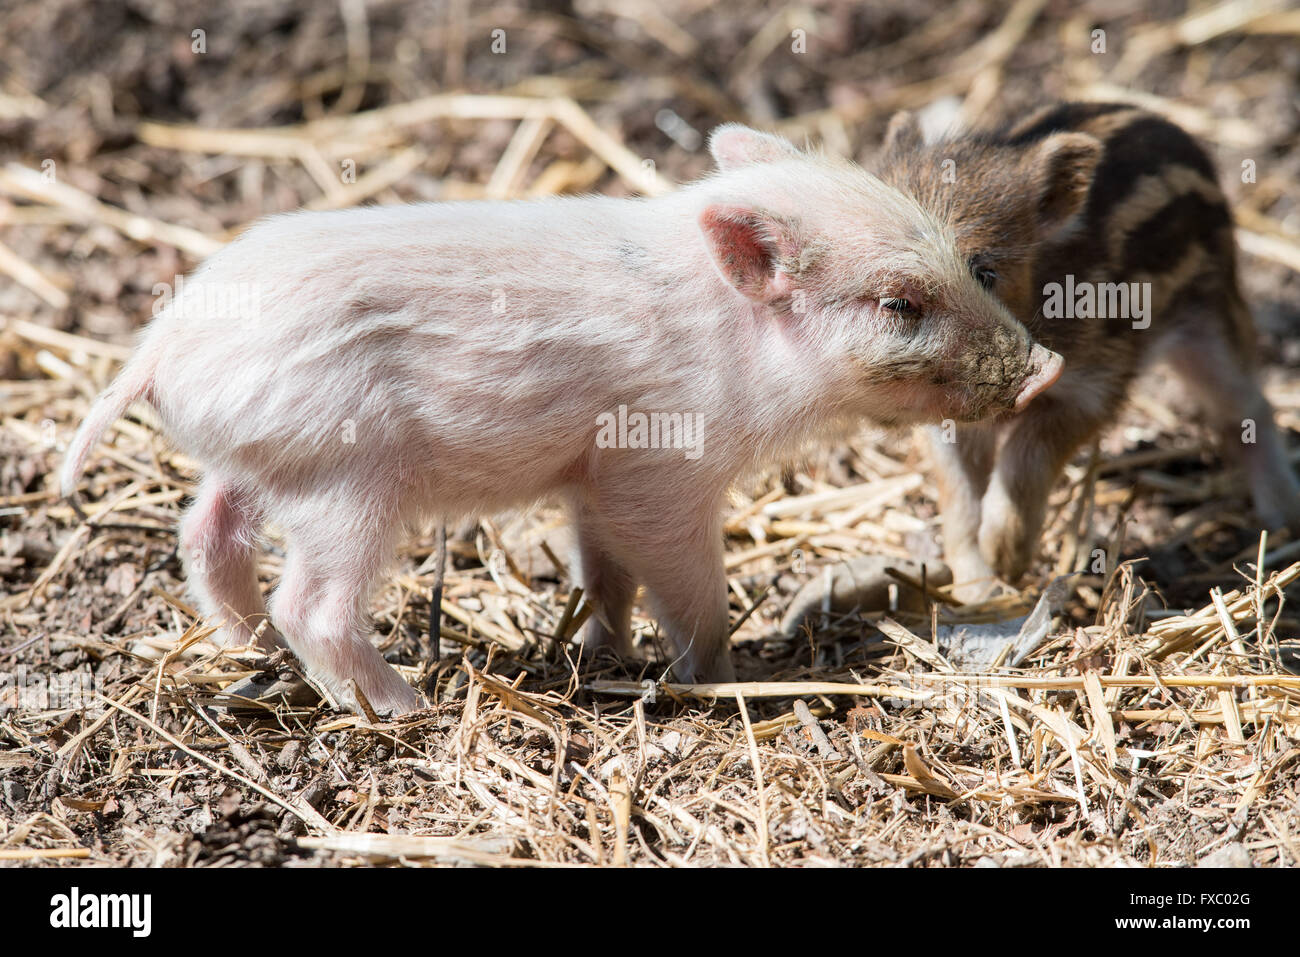 Ortenburg, Germany. 13th Apr, 2016. The white boar 'Bruno' stands in his enclosure in the Wildpark Schloss Ortenburg Stock Photo